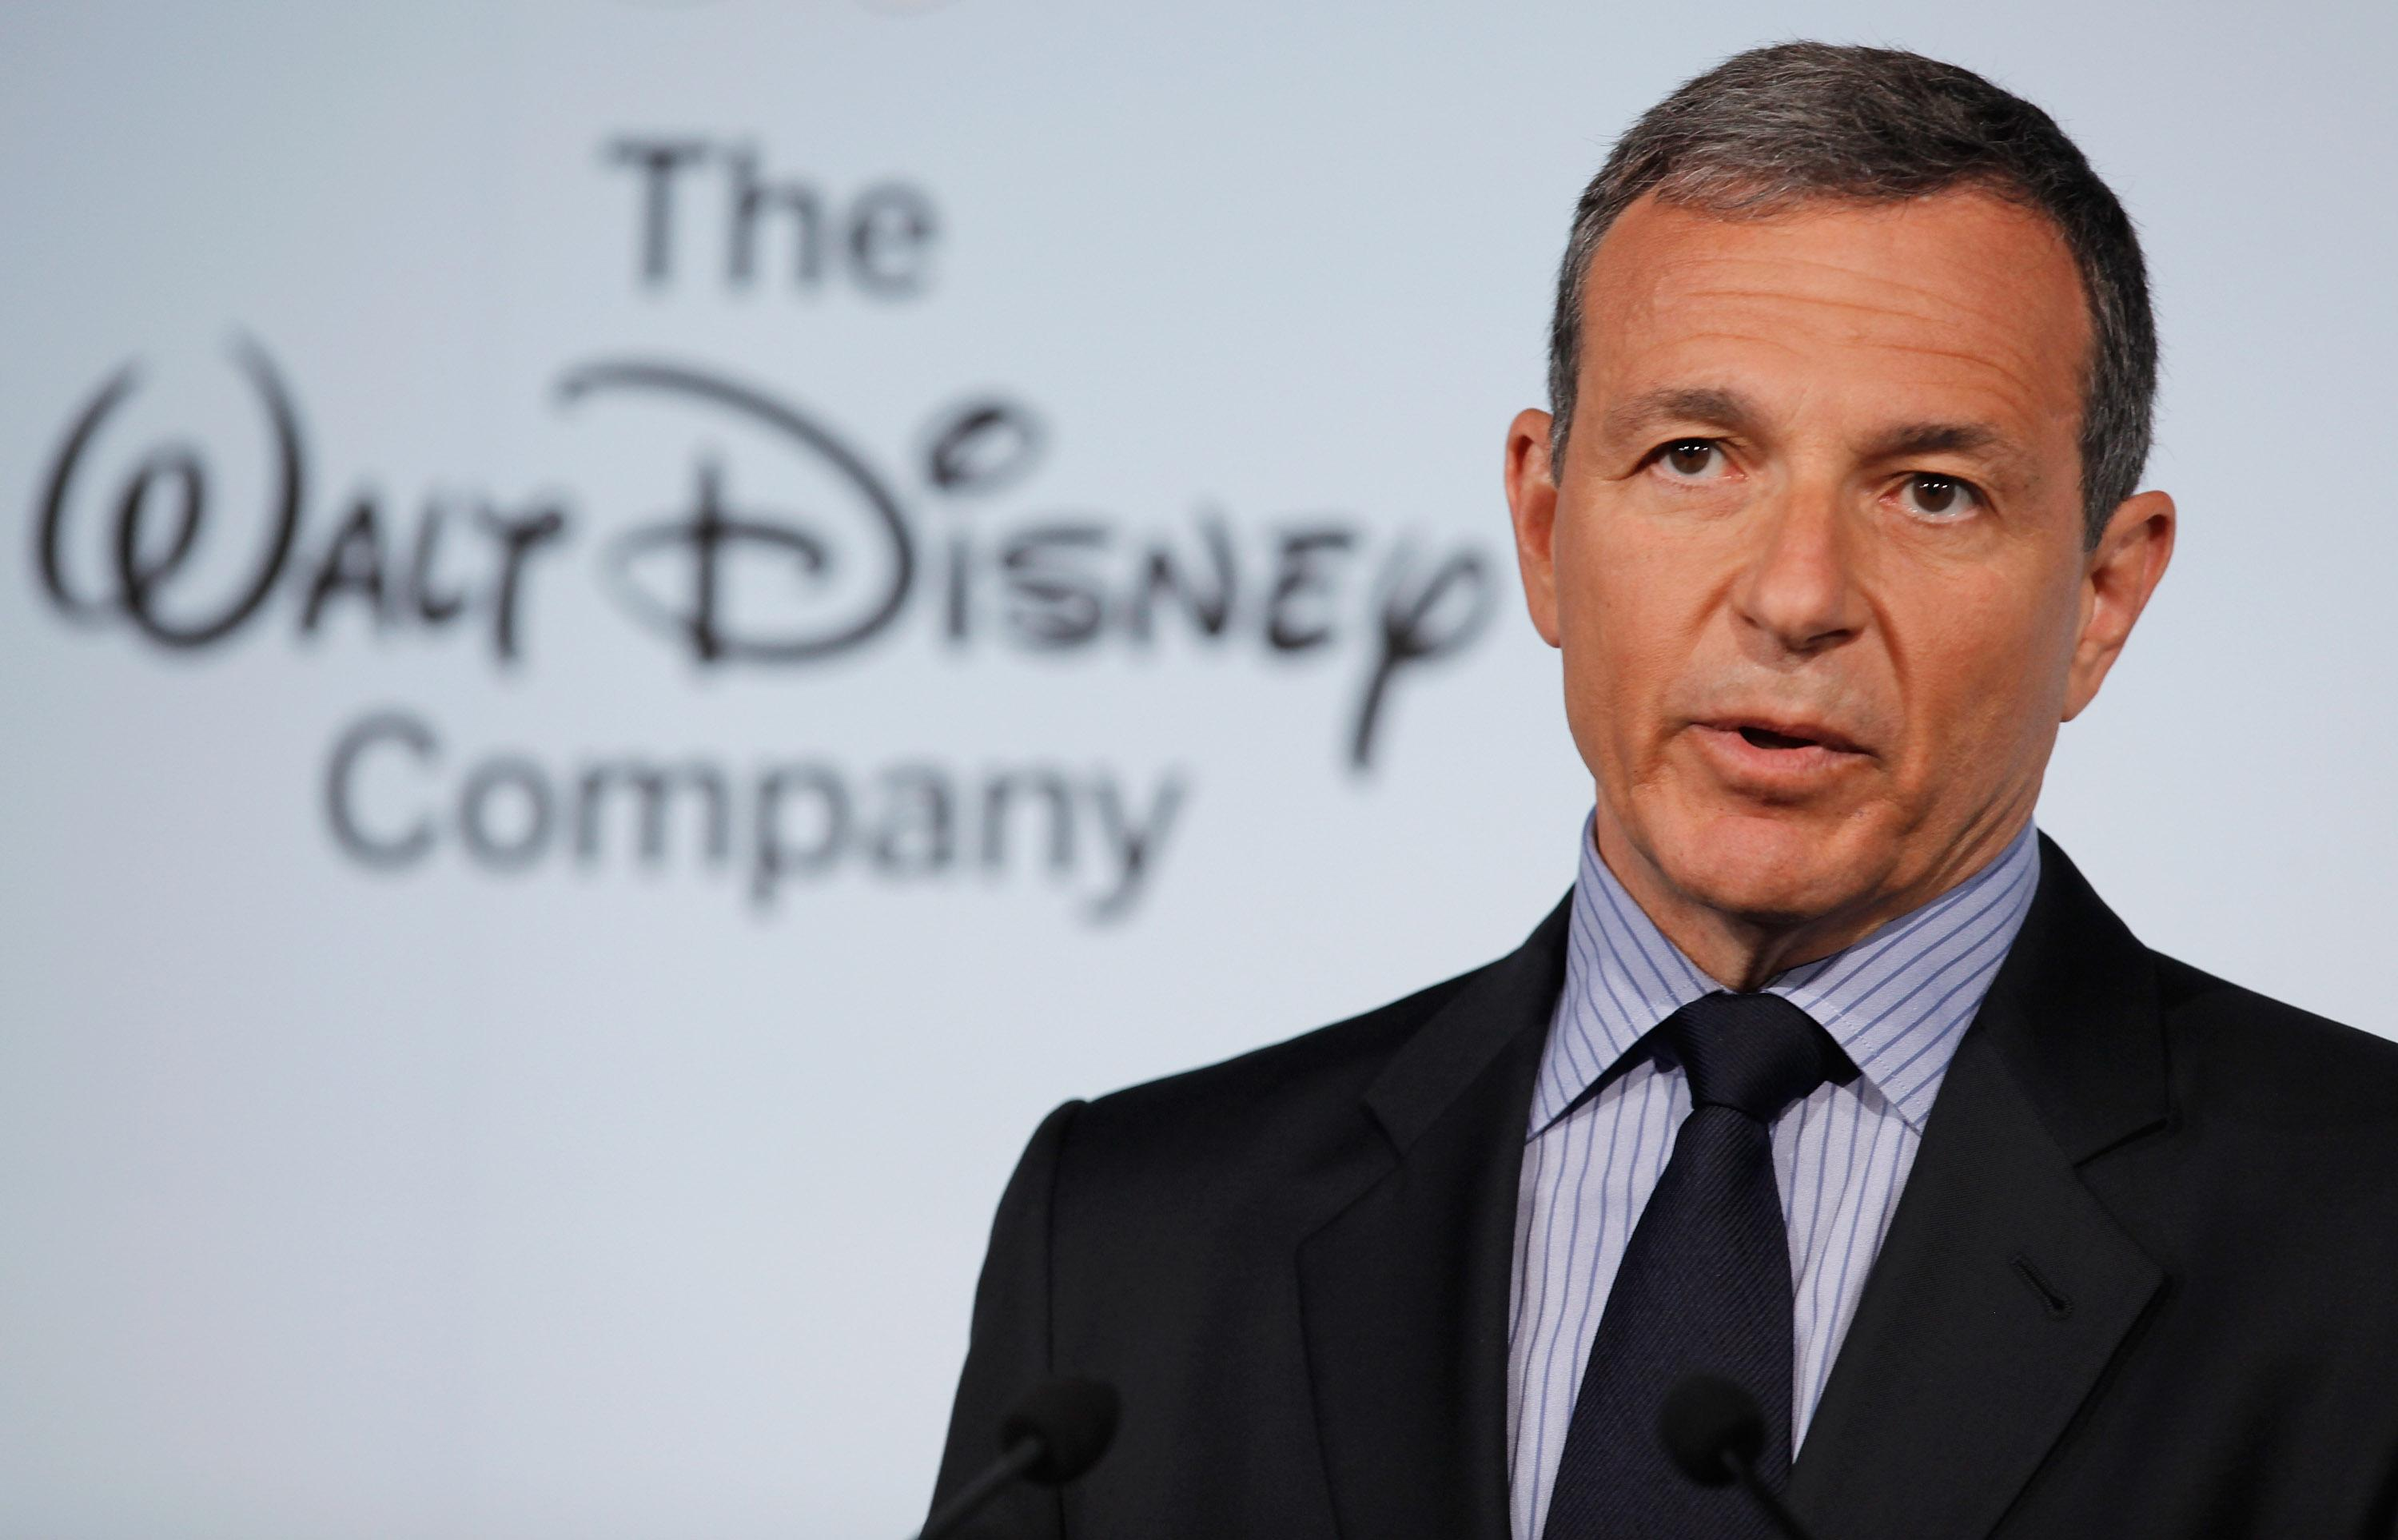 The Walt Disney Company Chairman and CEO Robert Iger